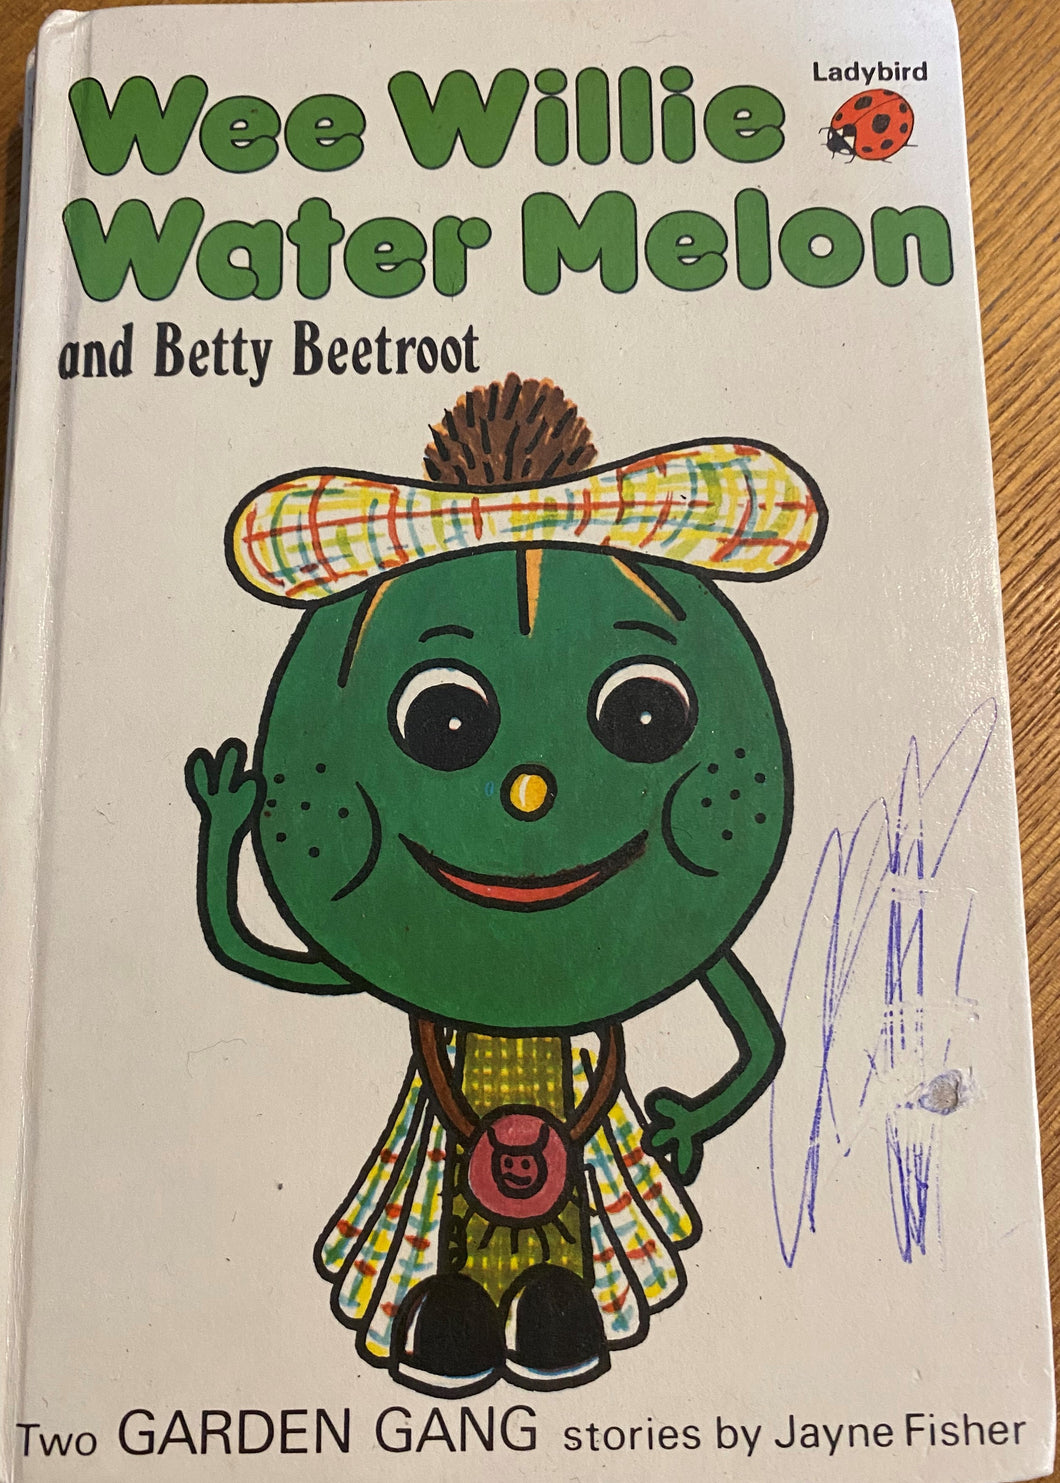 Wee Willie Watermelon  and Betty Beetroot (1 January 1984 - 31 December 1985)